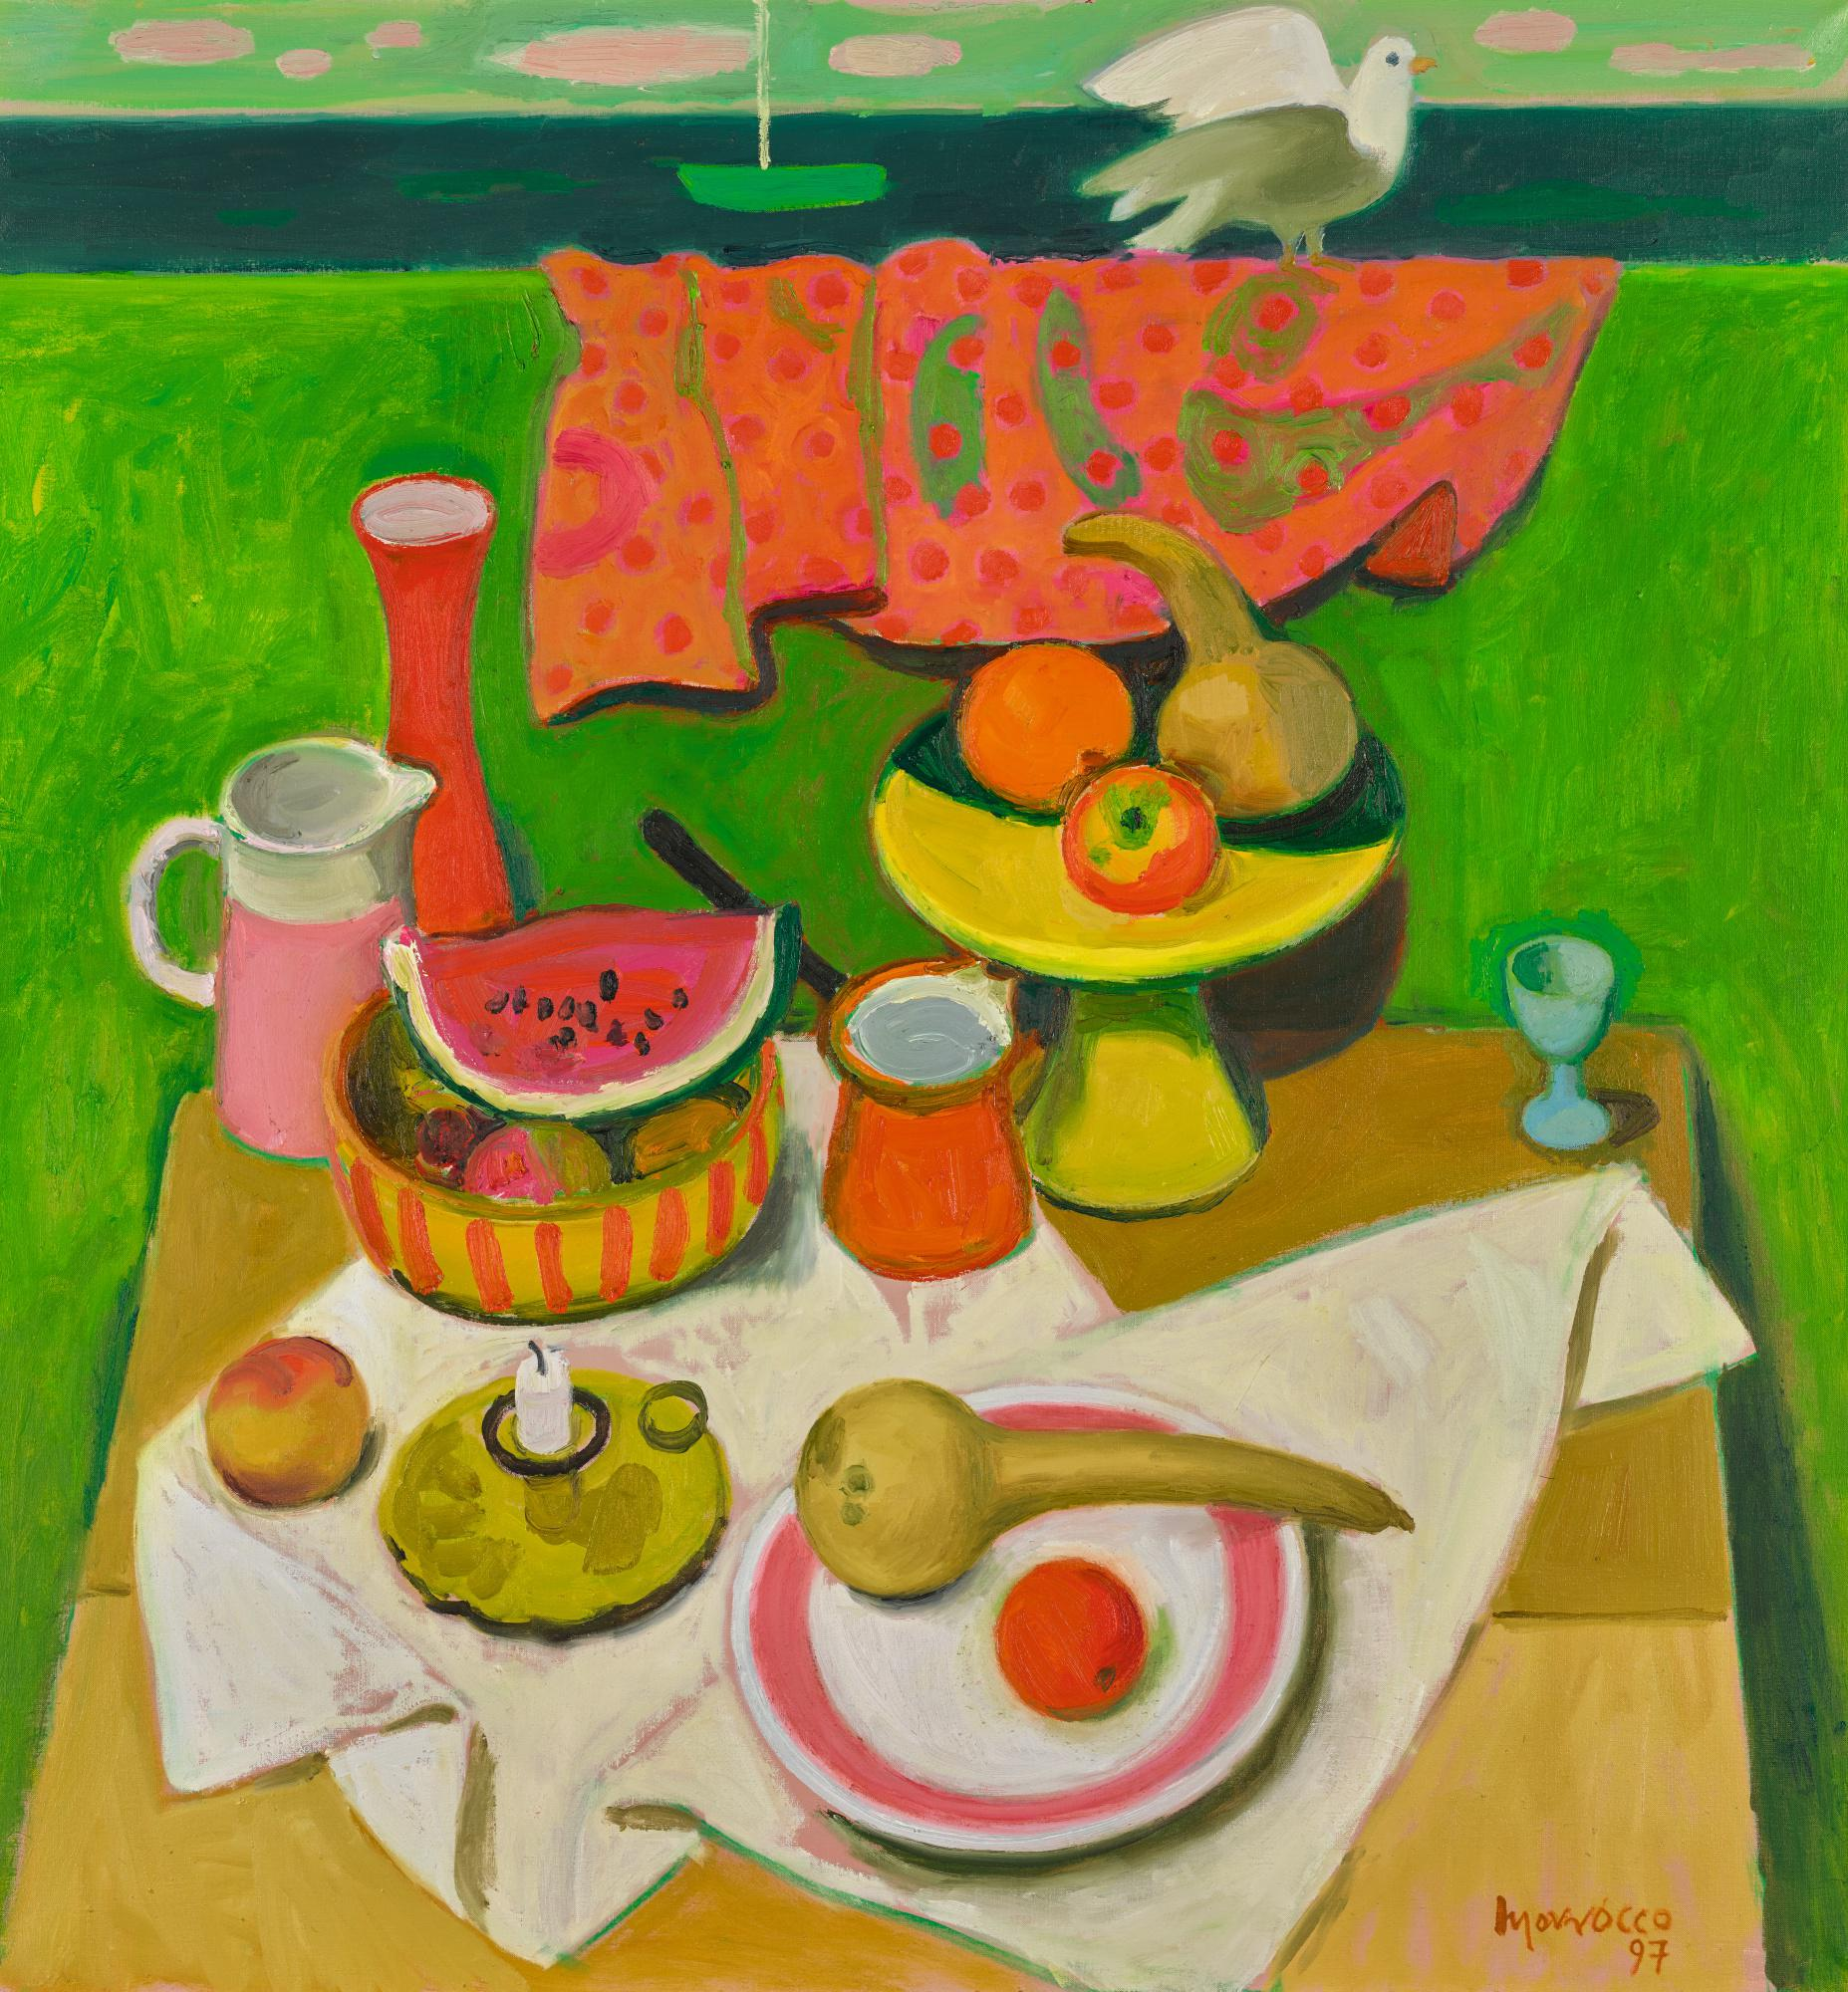 ALBERTO MORROCCO, R.S.A., R.S.W. | STILL LIFE BY THE SEA